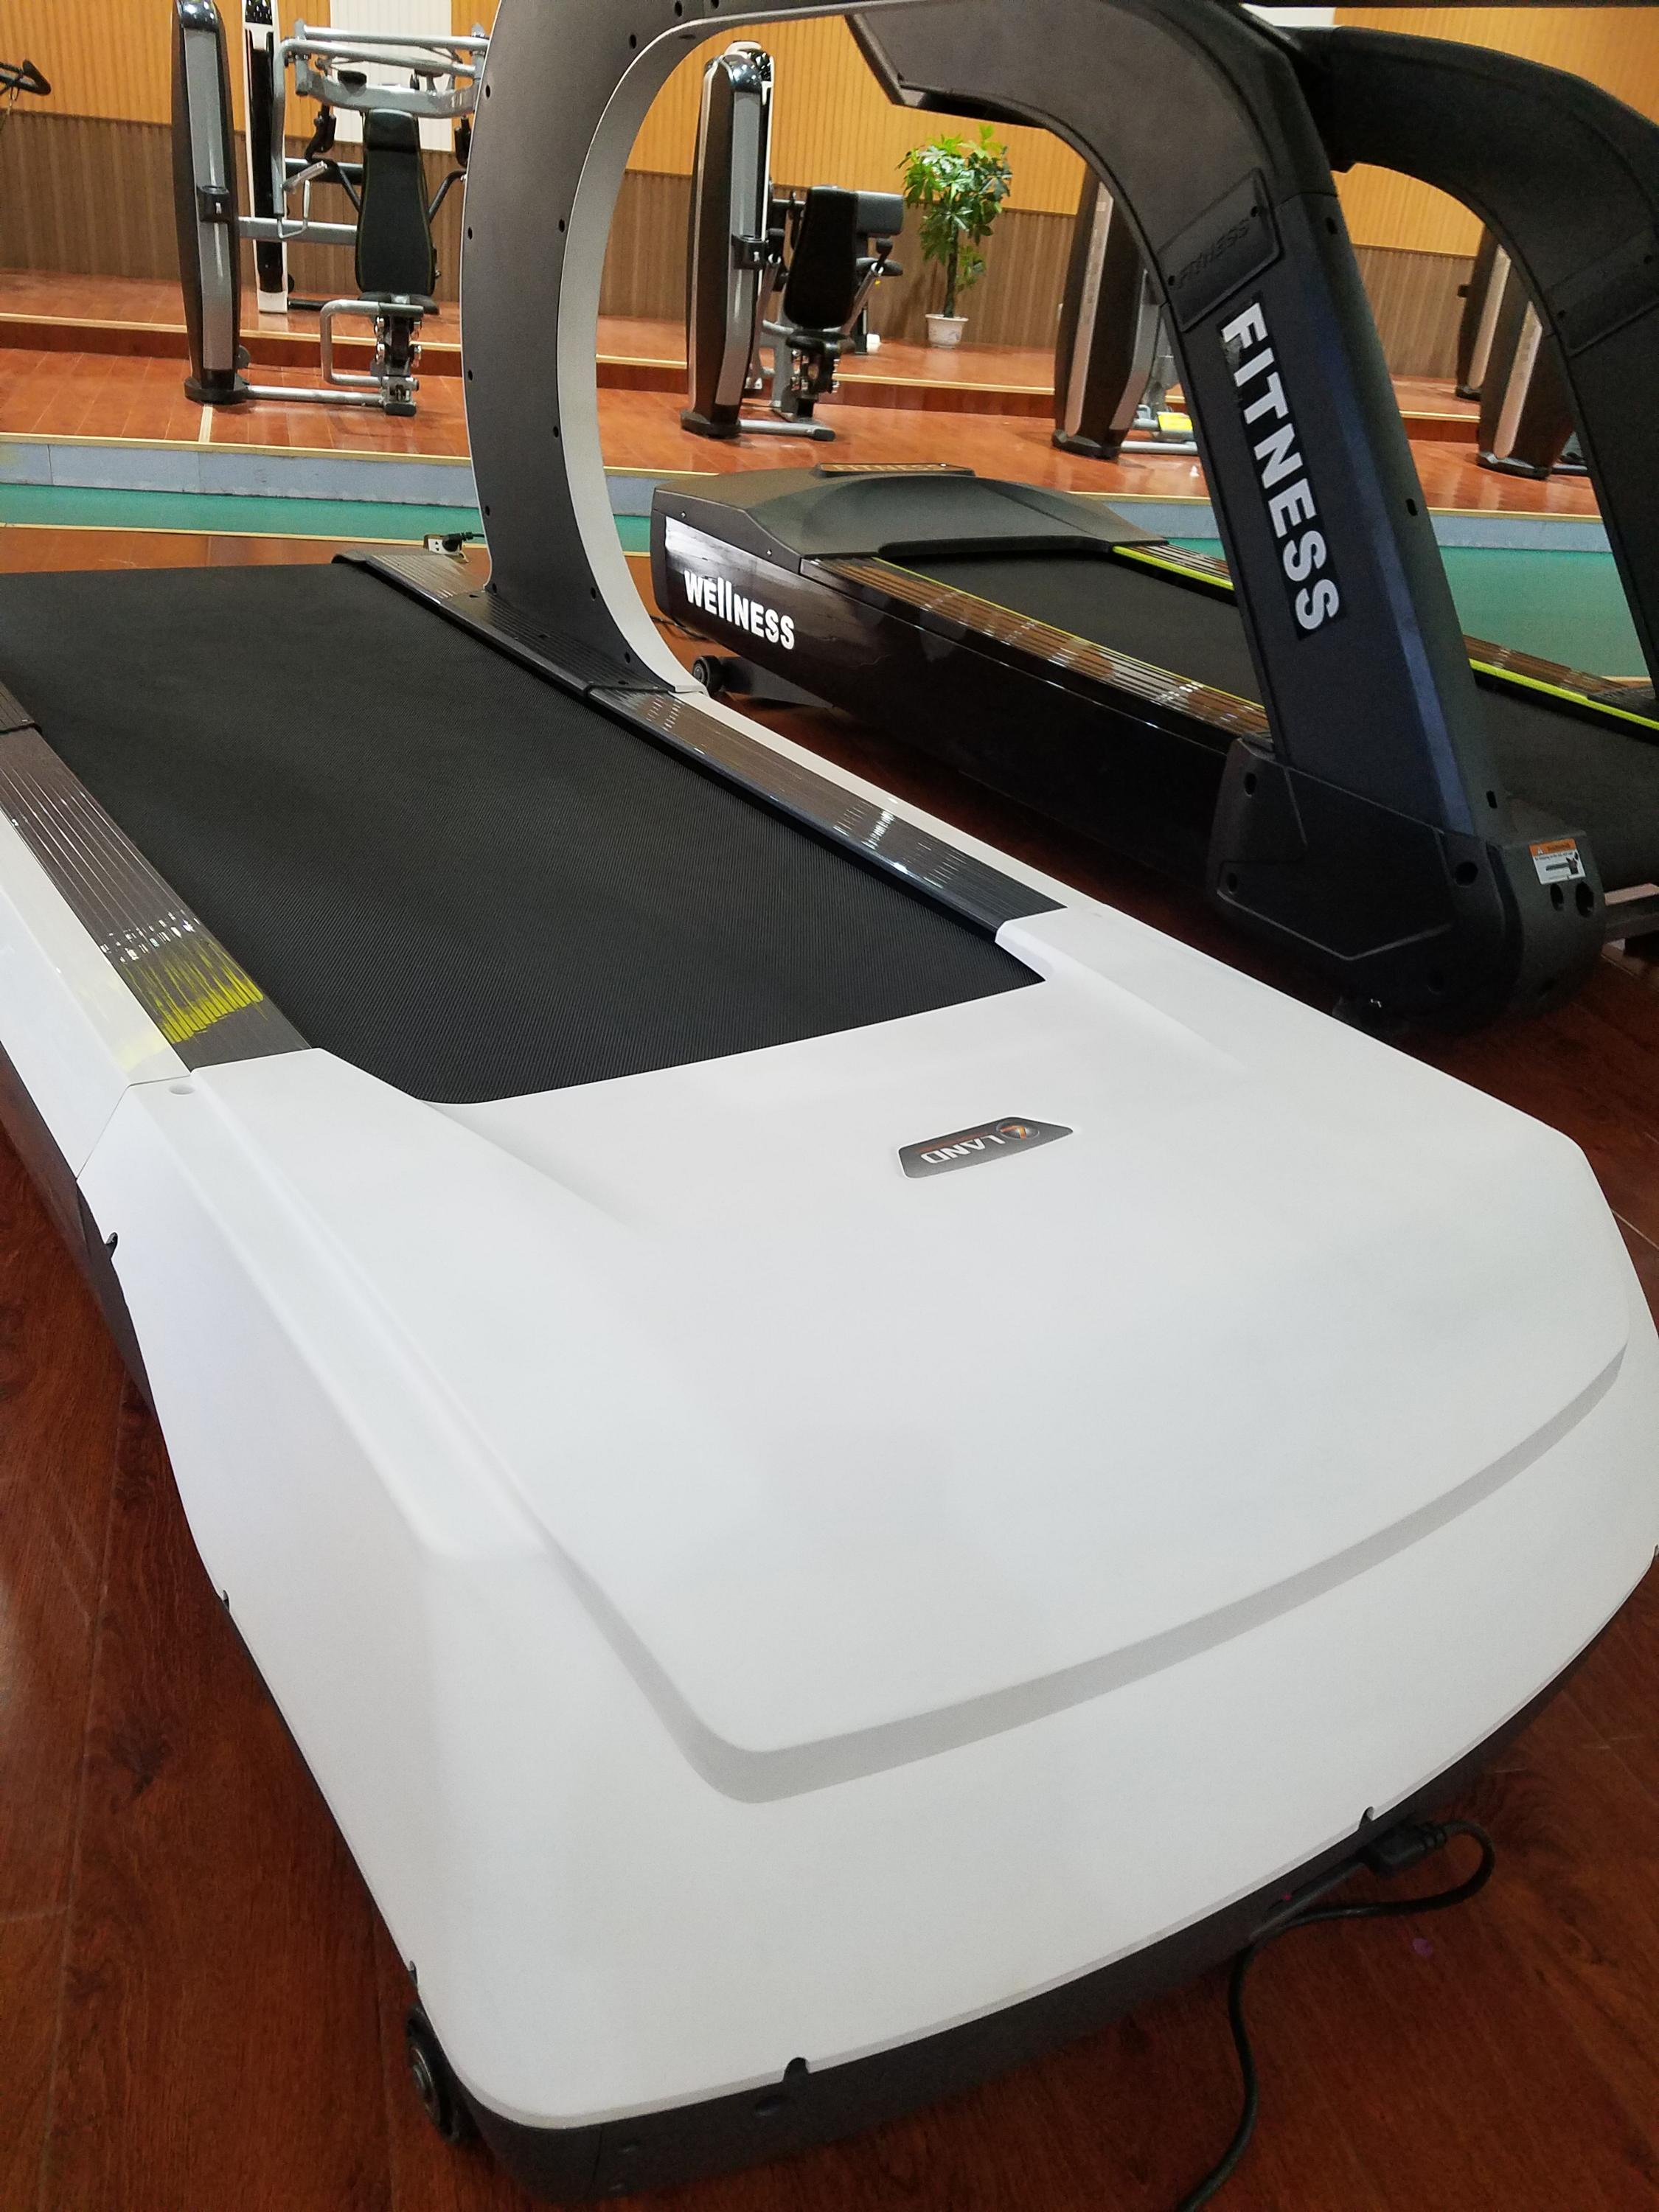 Commercial Treadmill 3HP LAND FITNESS Cardio Equipment LED Screen Running Machine